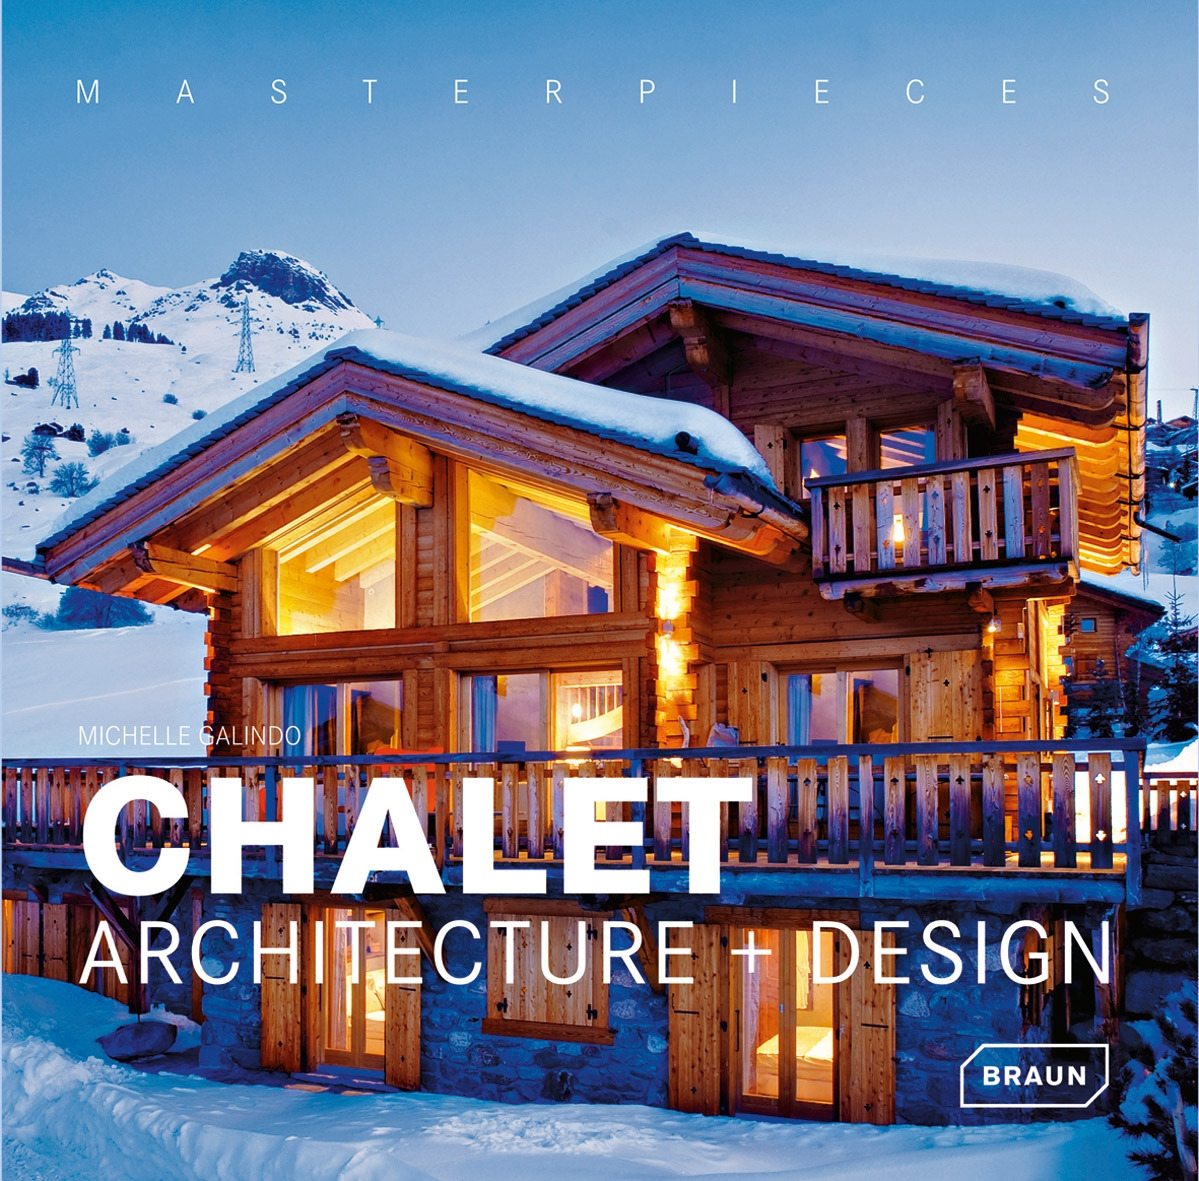 BIG_180_pic_MP_chalet_02.jpg